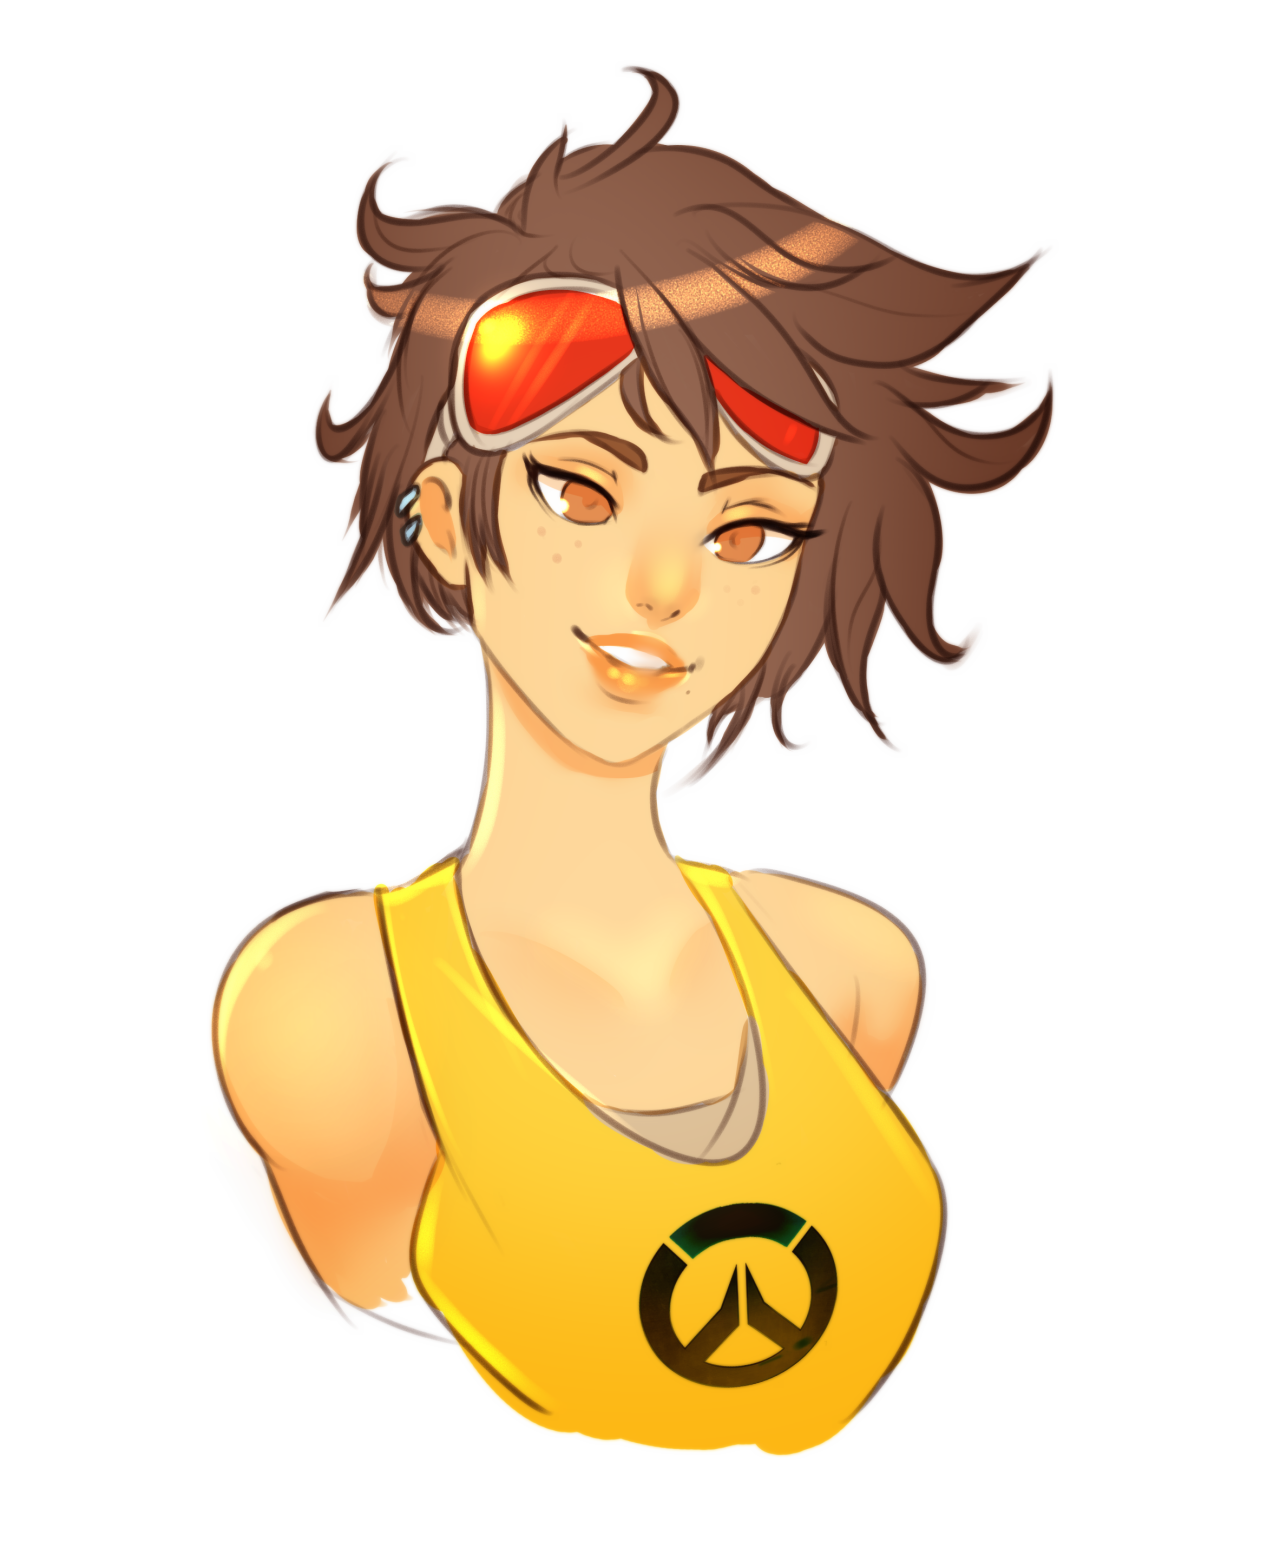 Overwatch tracer clipart clipart freeuse download Casual Tracer | Overwatch | Know Your Meme clipart freeuse download